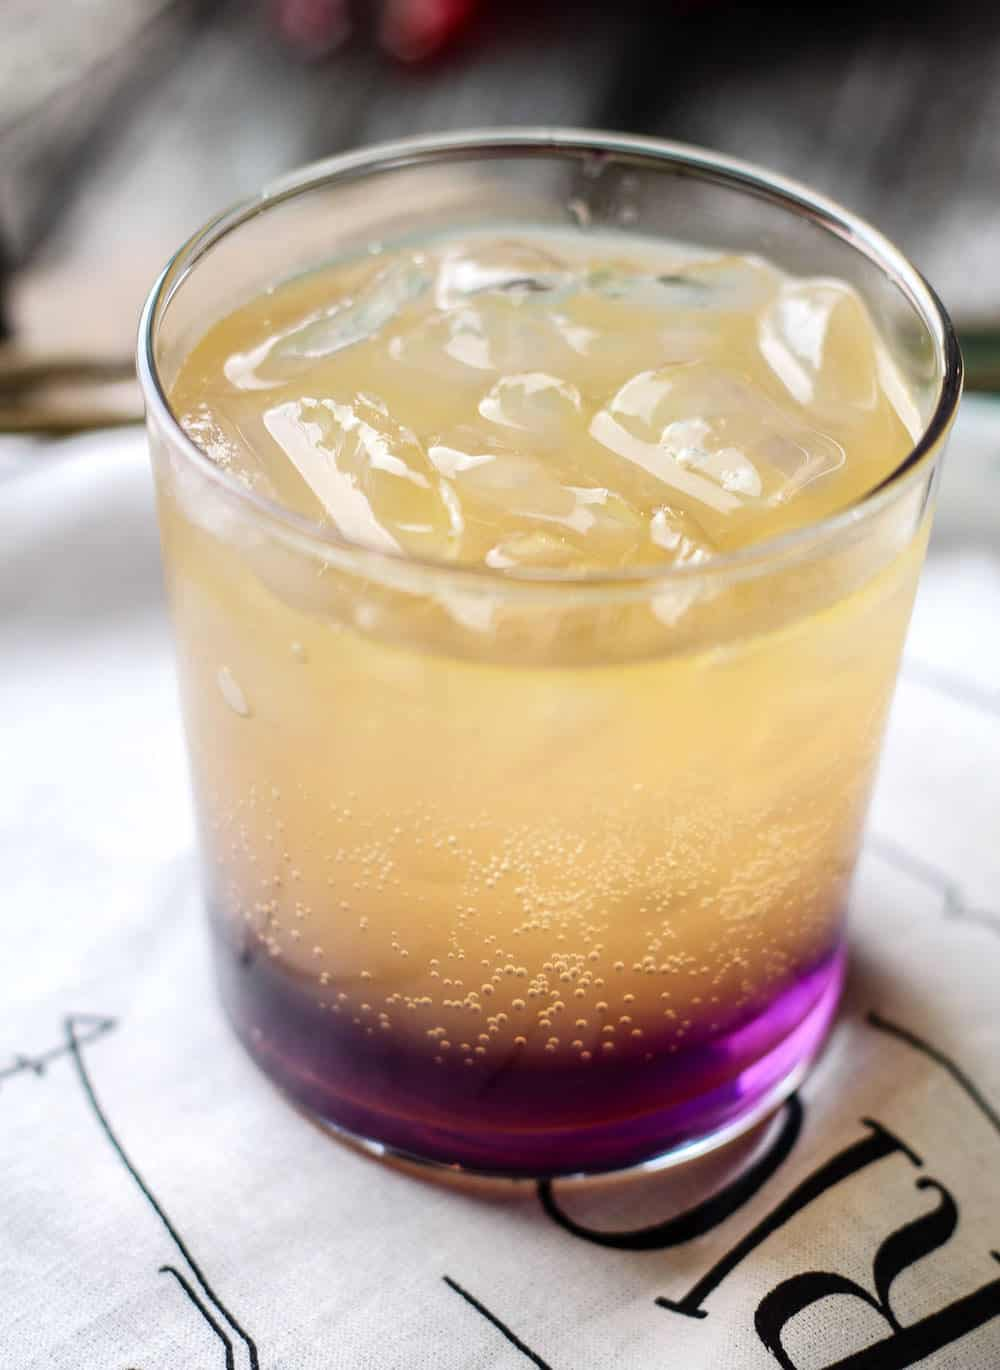 This hard lemonade recipe includes lavender syrup for a cocktail that both smells and tastes delicious! Learn how to mix it here.